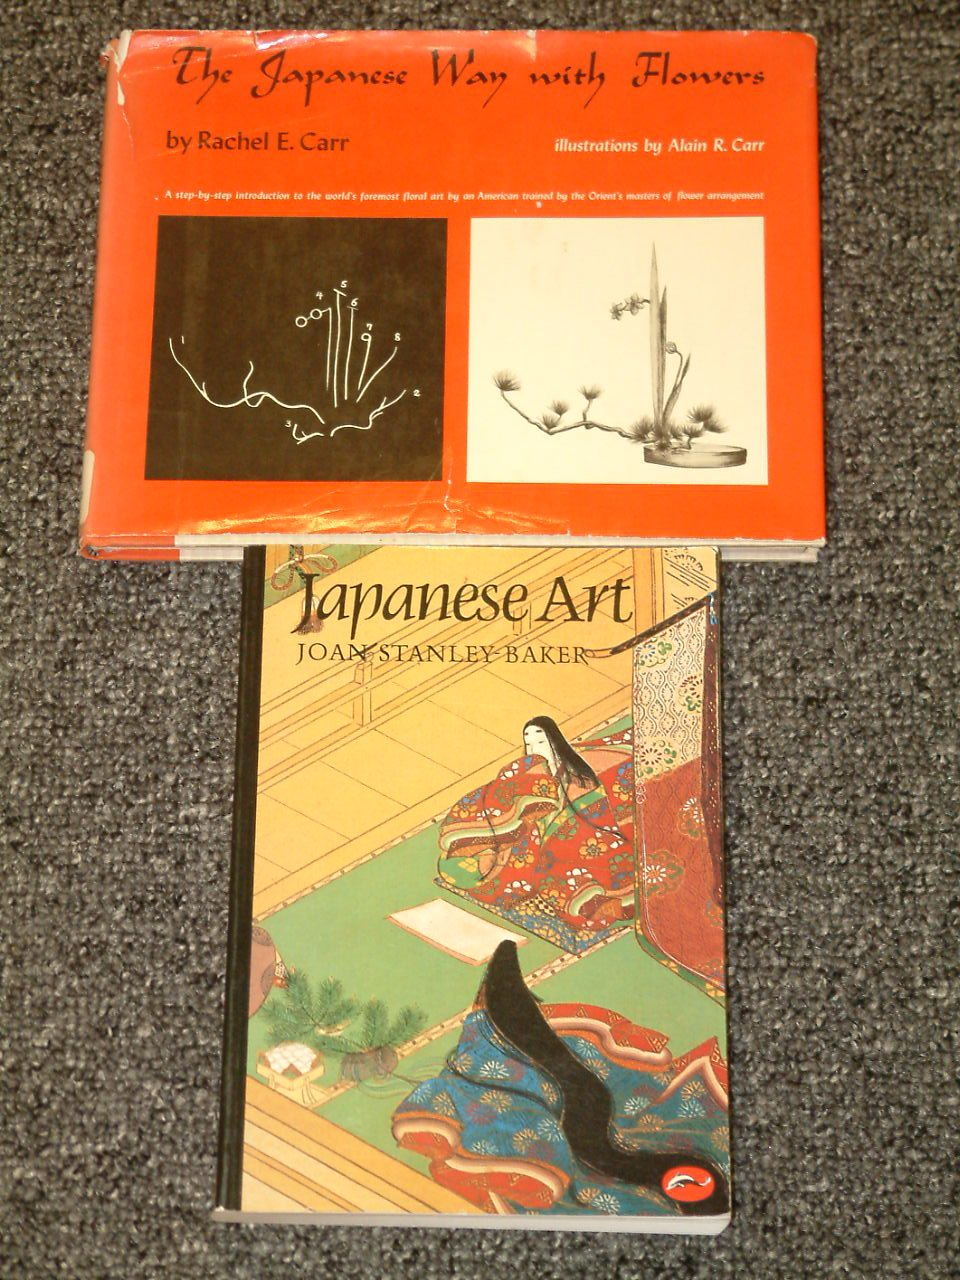 Japanese Art by Joan Stanley Baker and The Japanese Way with Flowers